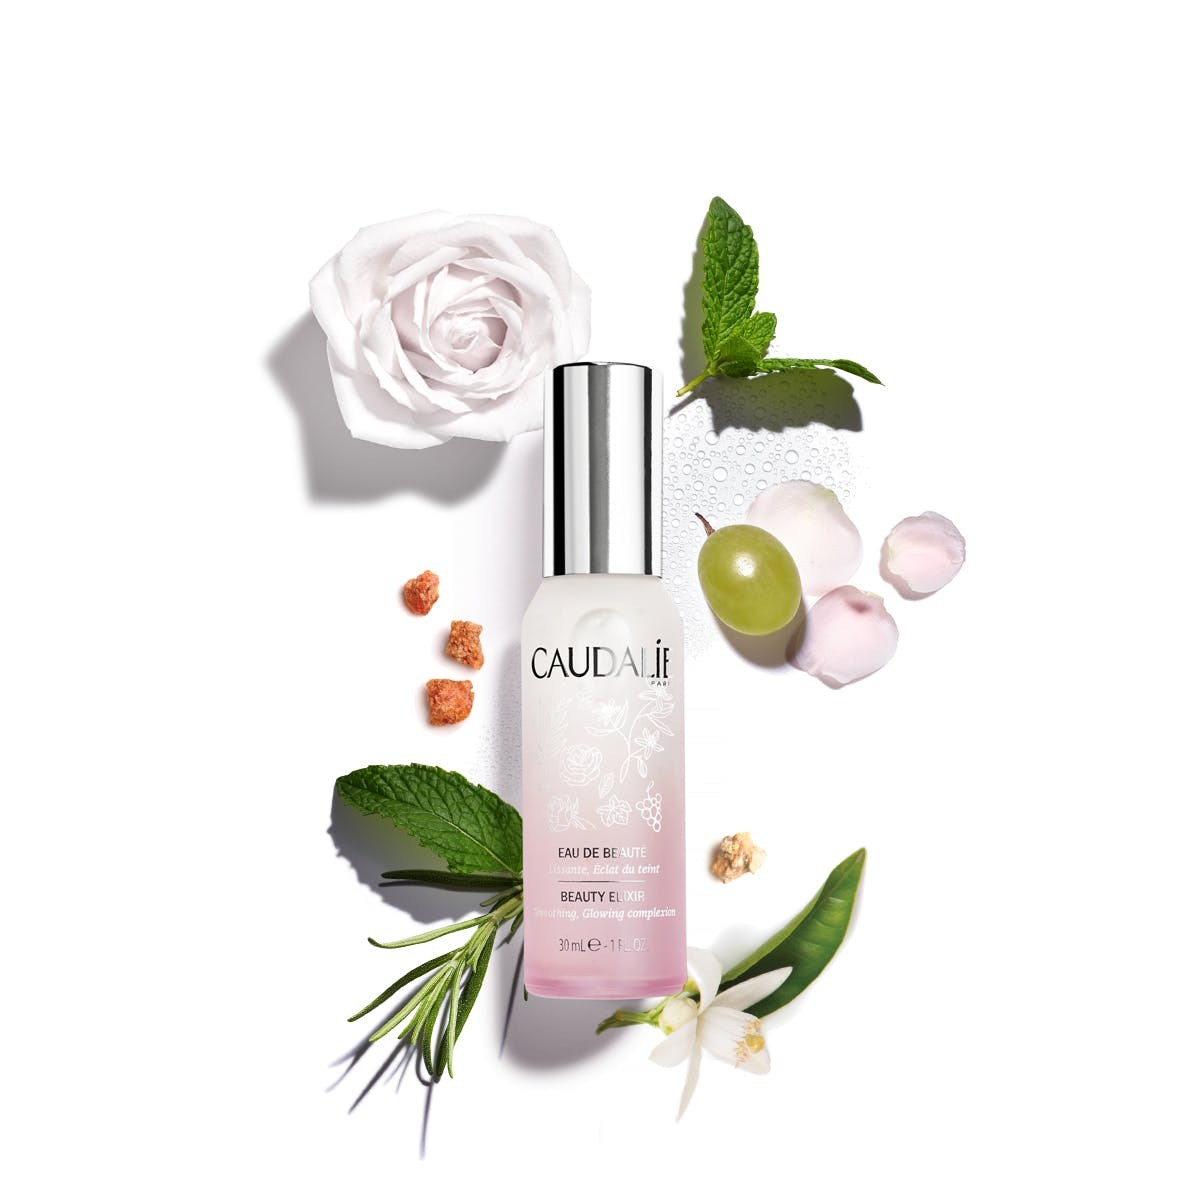 Limited Edition Beauty Elixir - Travel Size